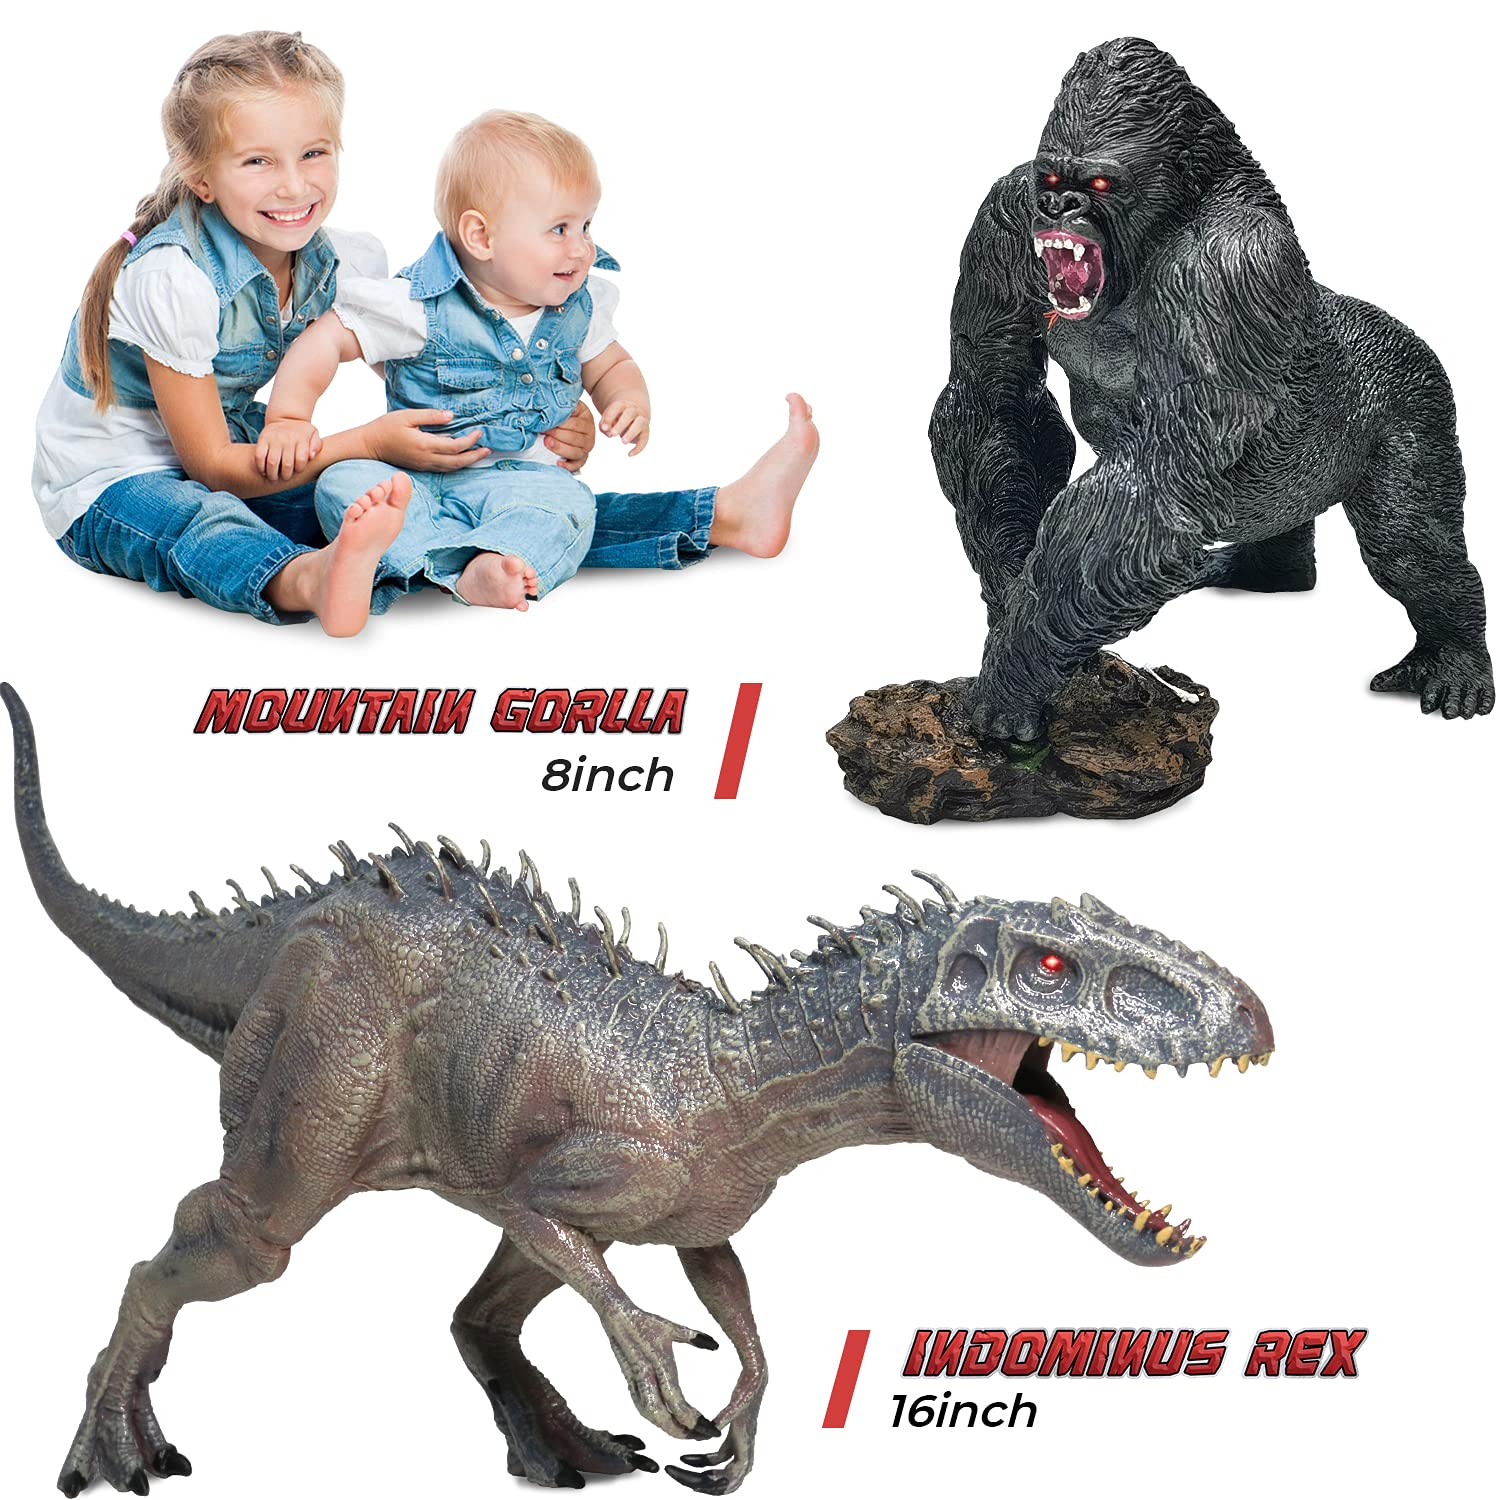 """CPSTOYWORLD Jumbo Dinosaur Toy Indominus Rex and Gorilla Toys Set,16"""" Realistic Educational Large Dinosaur Action Figures Wildlife Animal Model, Great for Collector, Home Decoration, Party Favor…"""